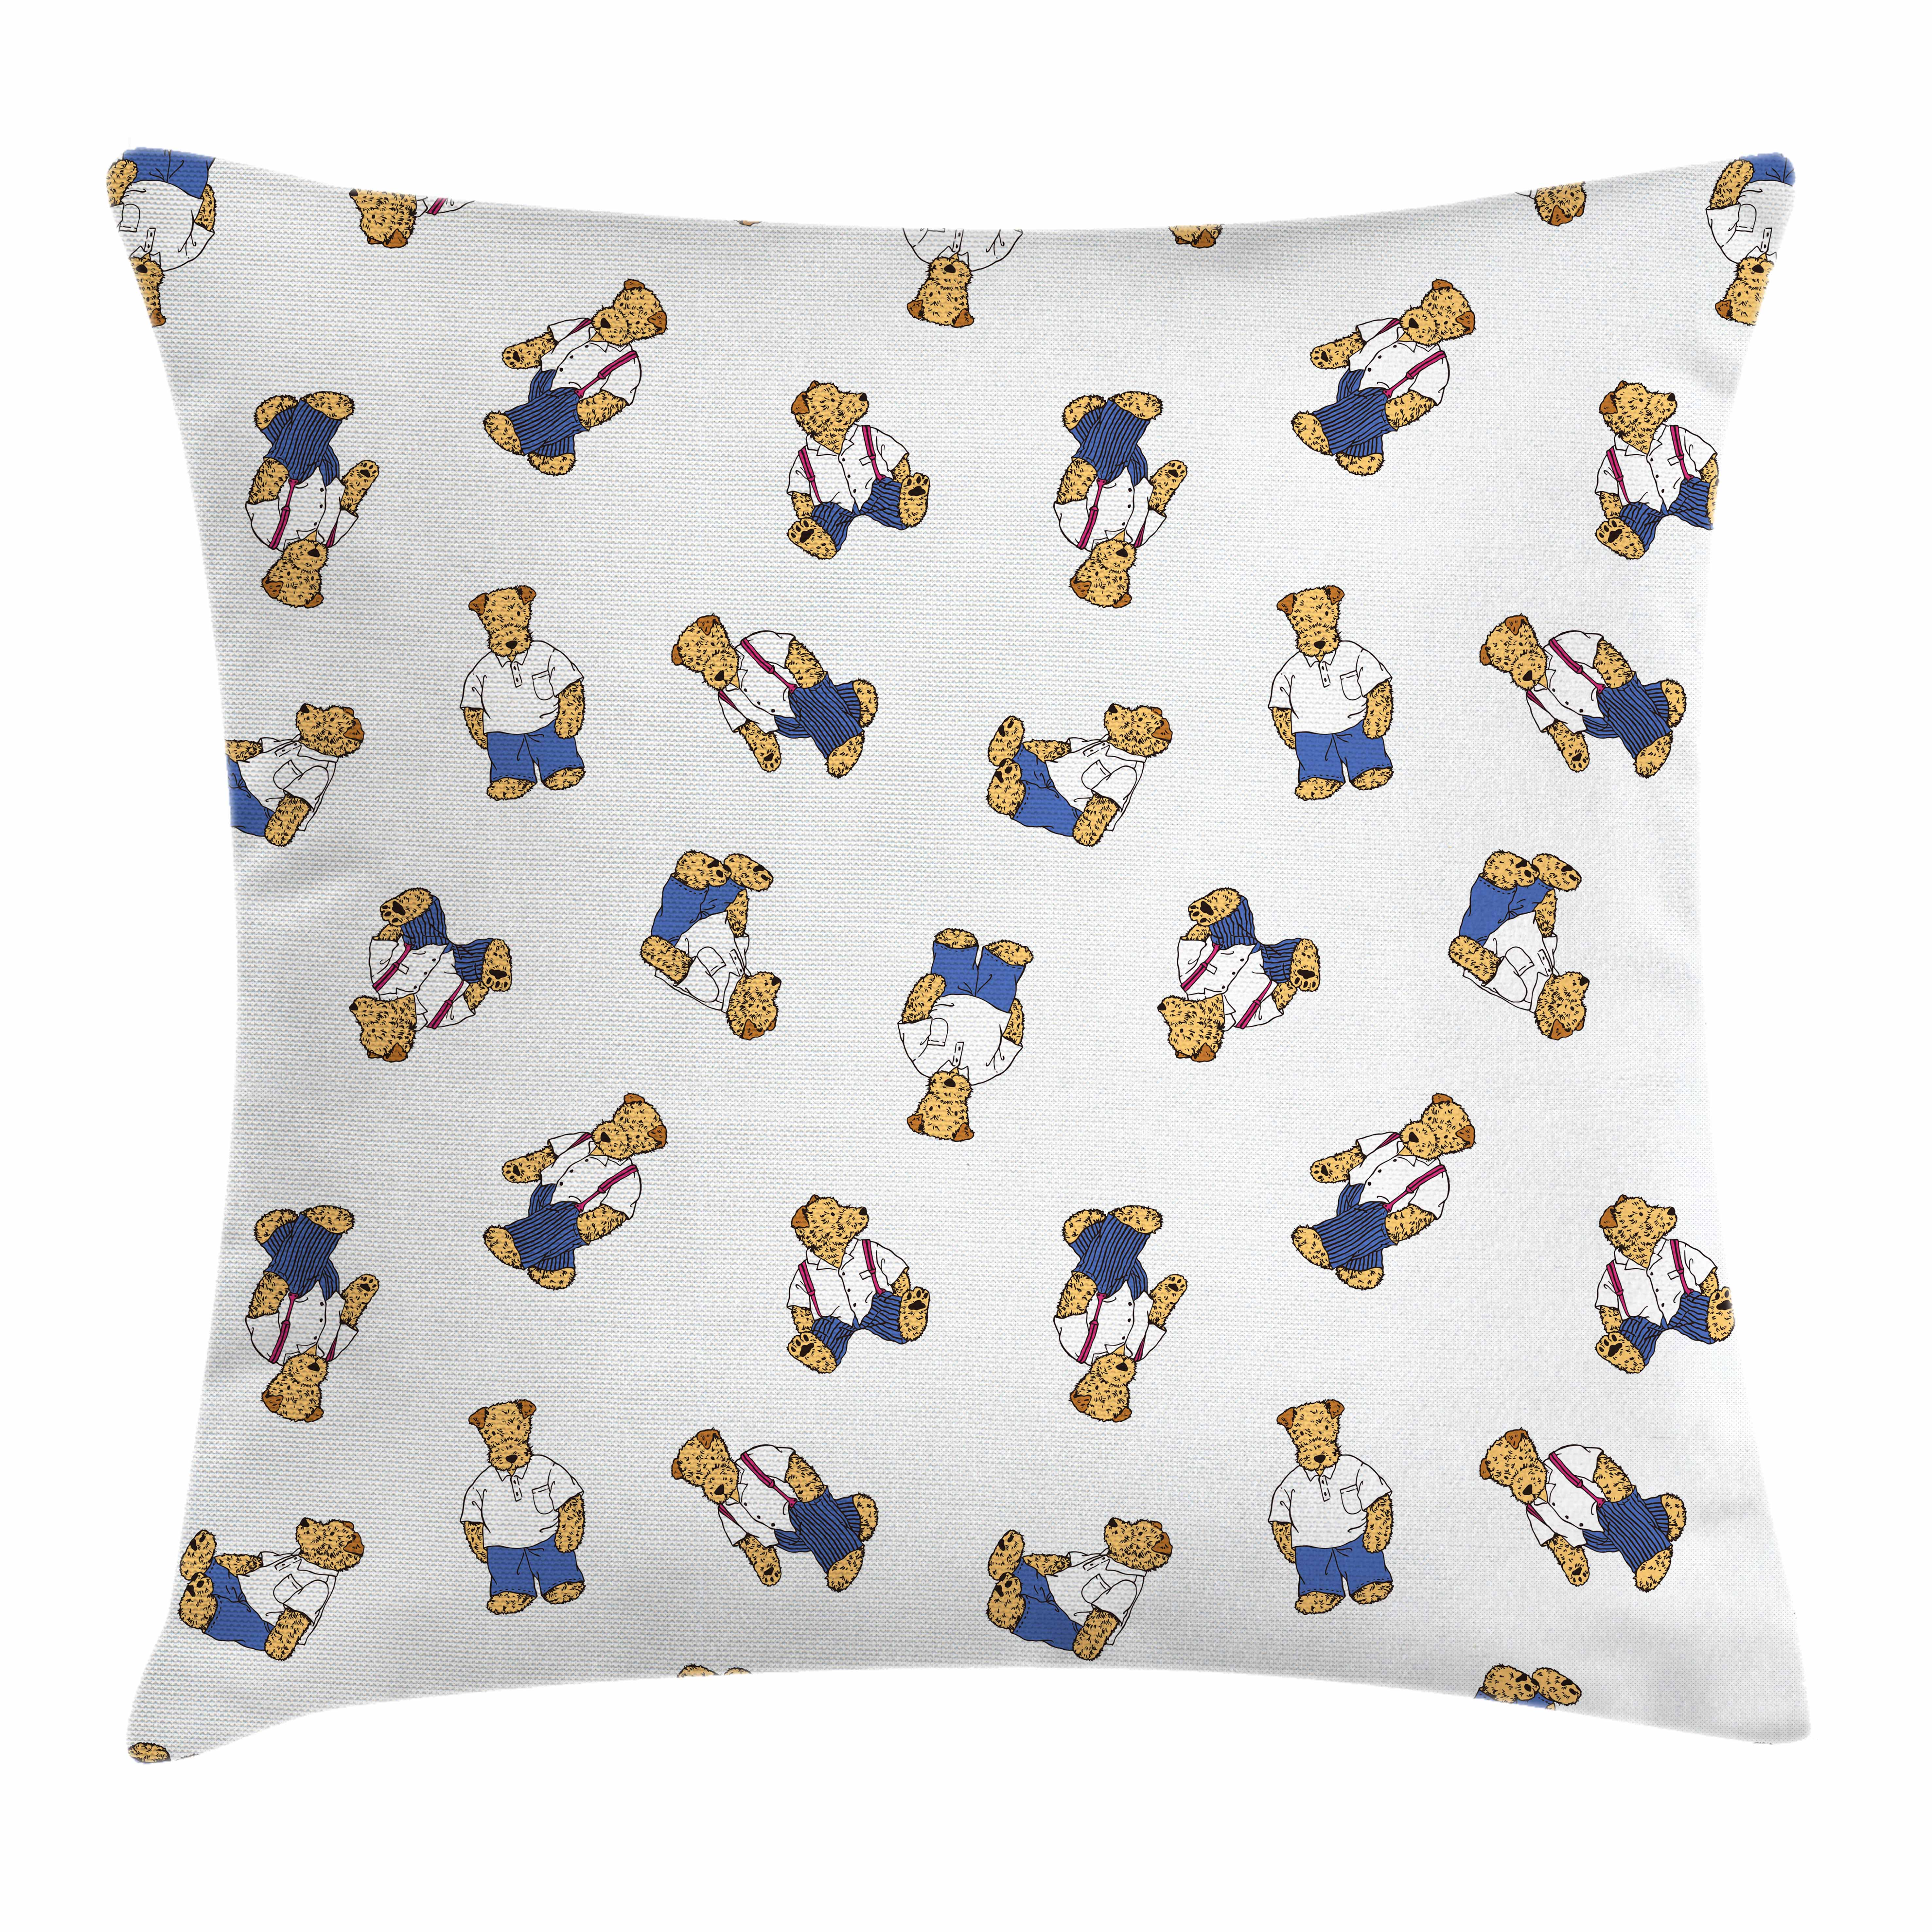 Kids Throw Pillow Cushion Cover, Cute Teddy Bear Style Dog on Nostalgic Polka Dots Childish Cartoon, Decorative Square Accent Pillow Case, 16 X 16 Inches, Violet Blue Pale Brown Black, by Ambesonne